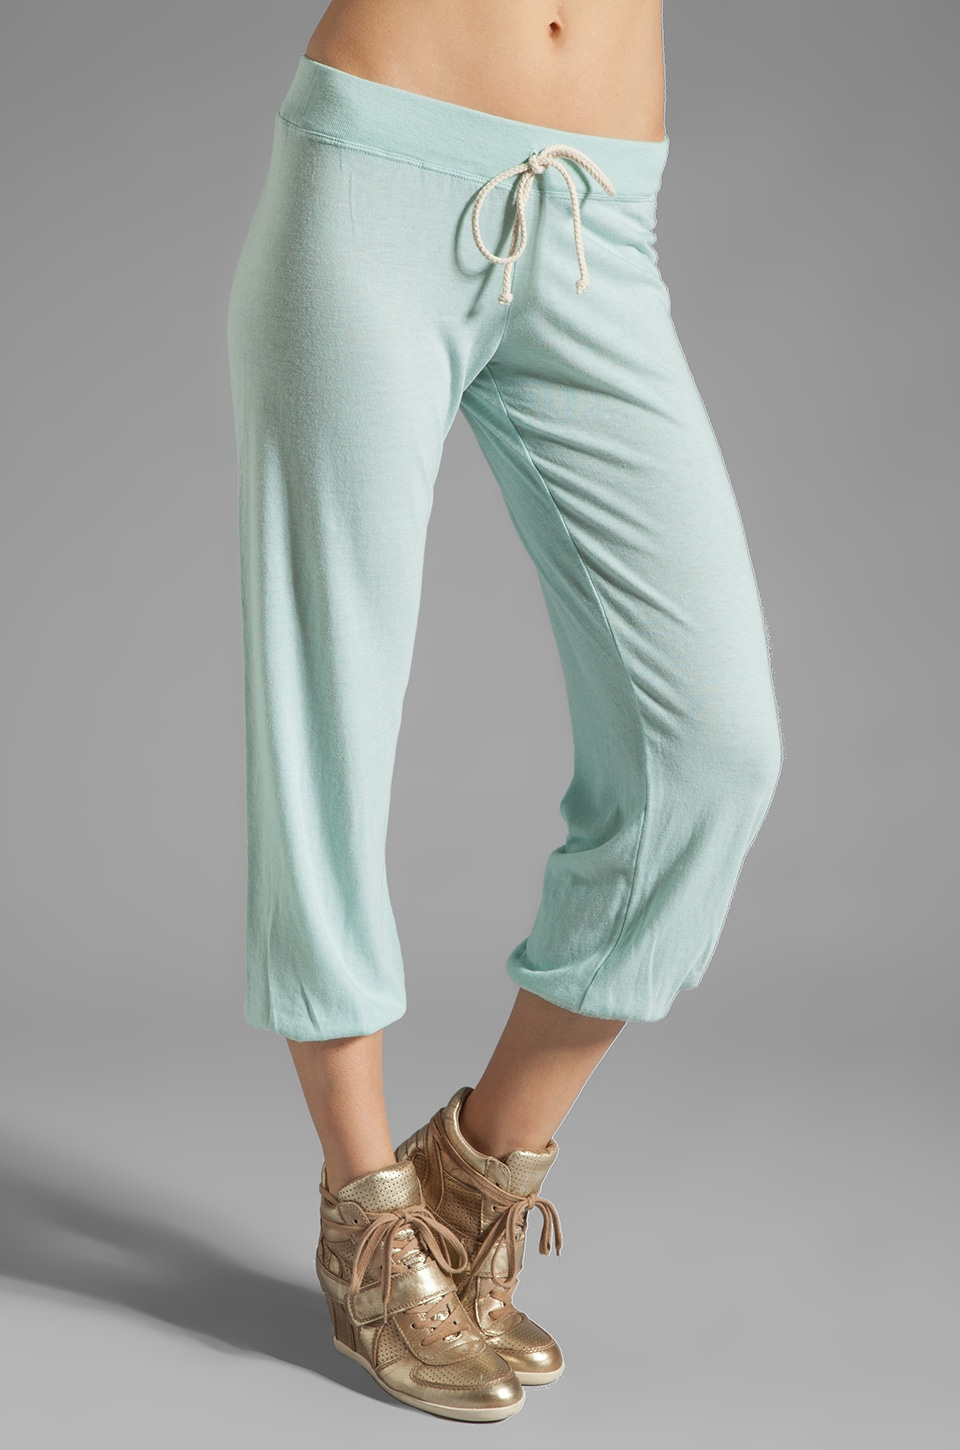 Nation LTD Medora Capri Sweats in Mint